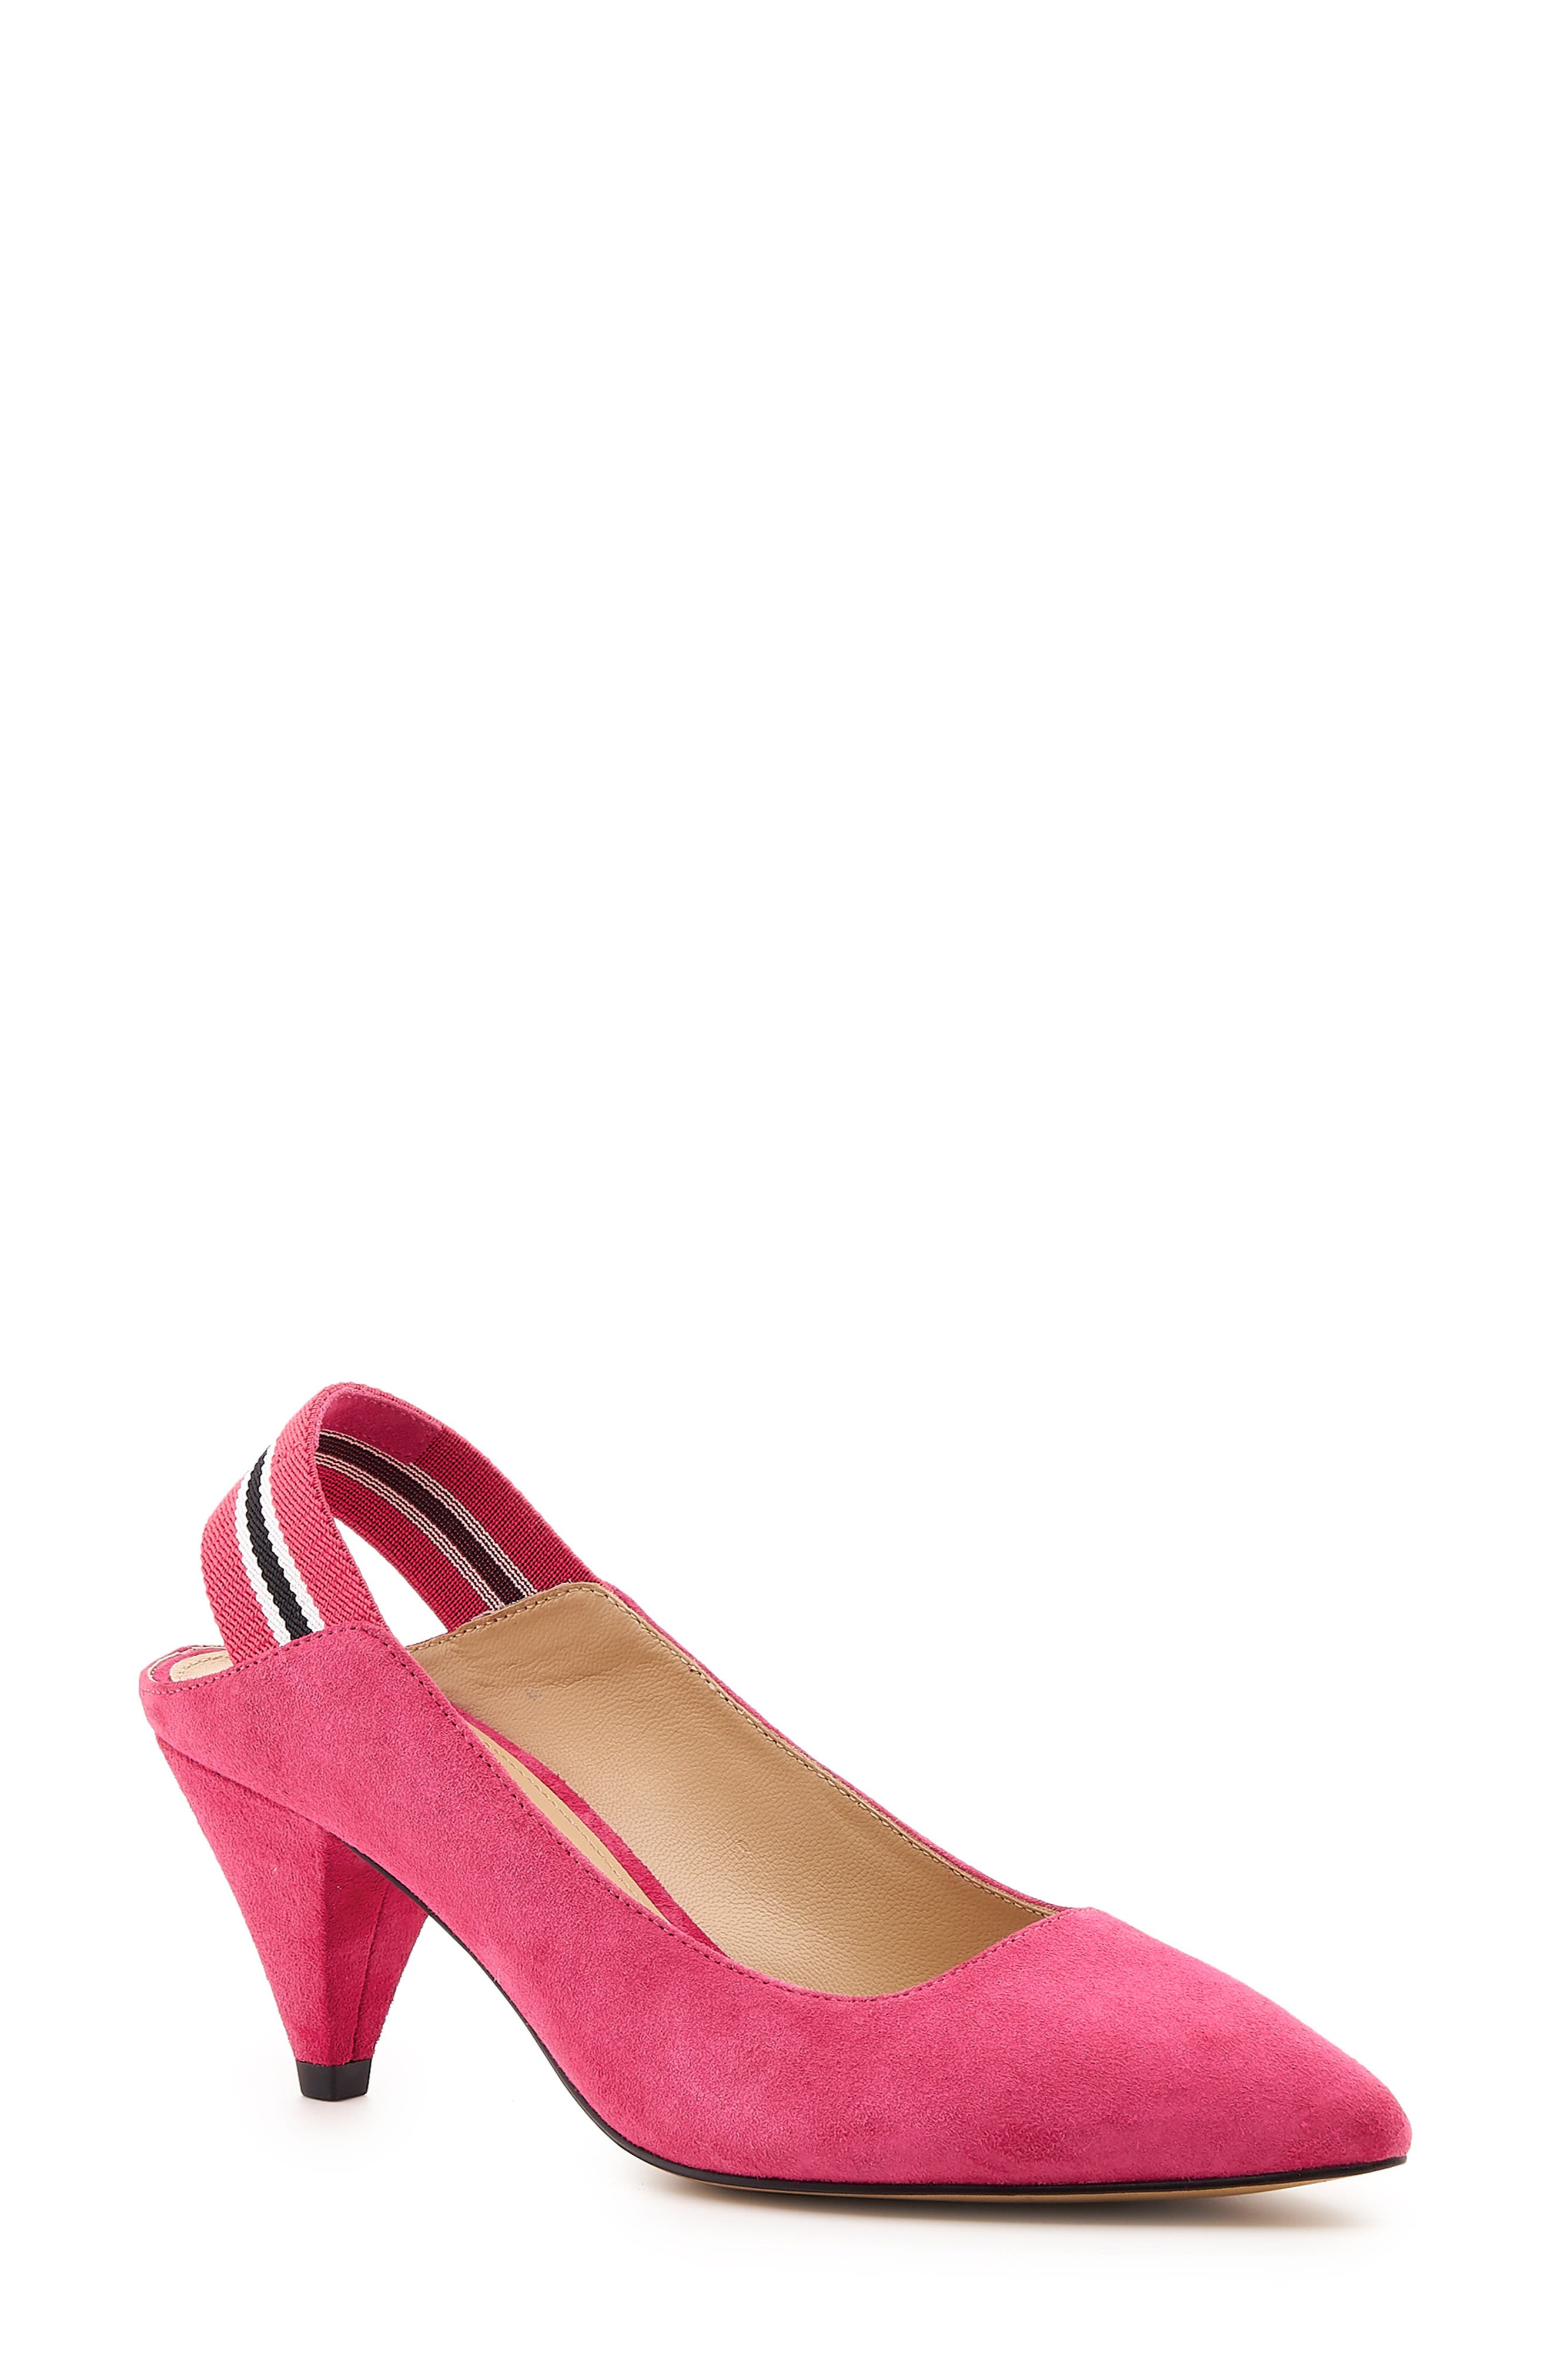 Women'S Cobble Hill Cone Heel Suede Slingback Pumps in Party Pink Suede